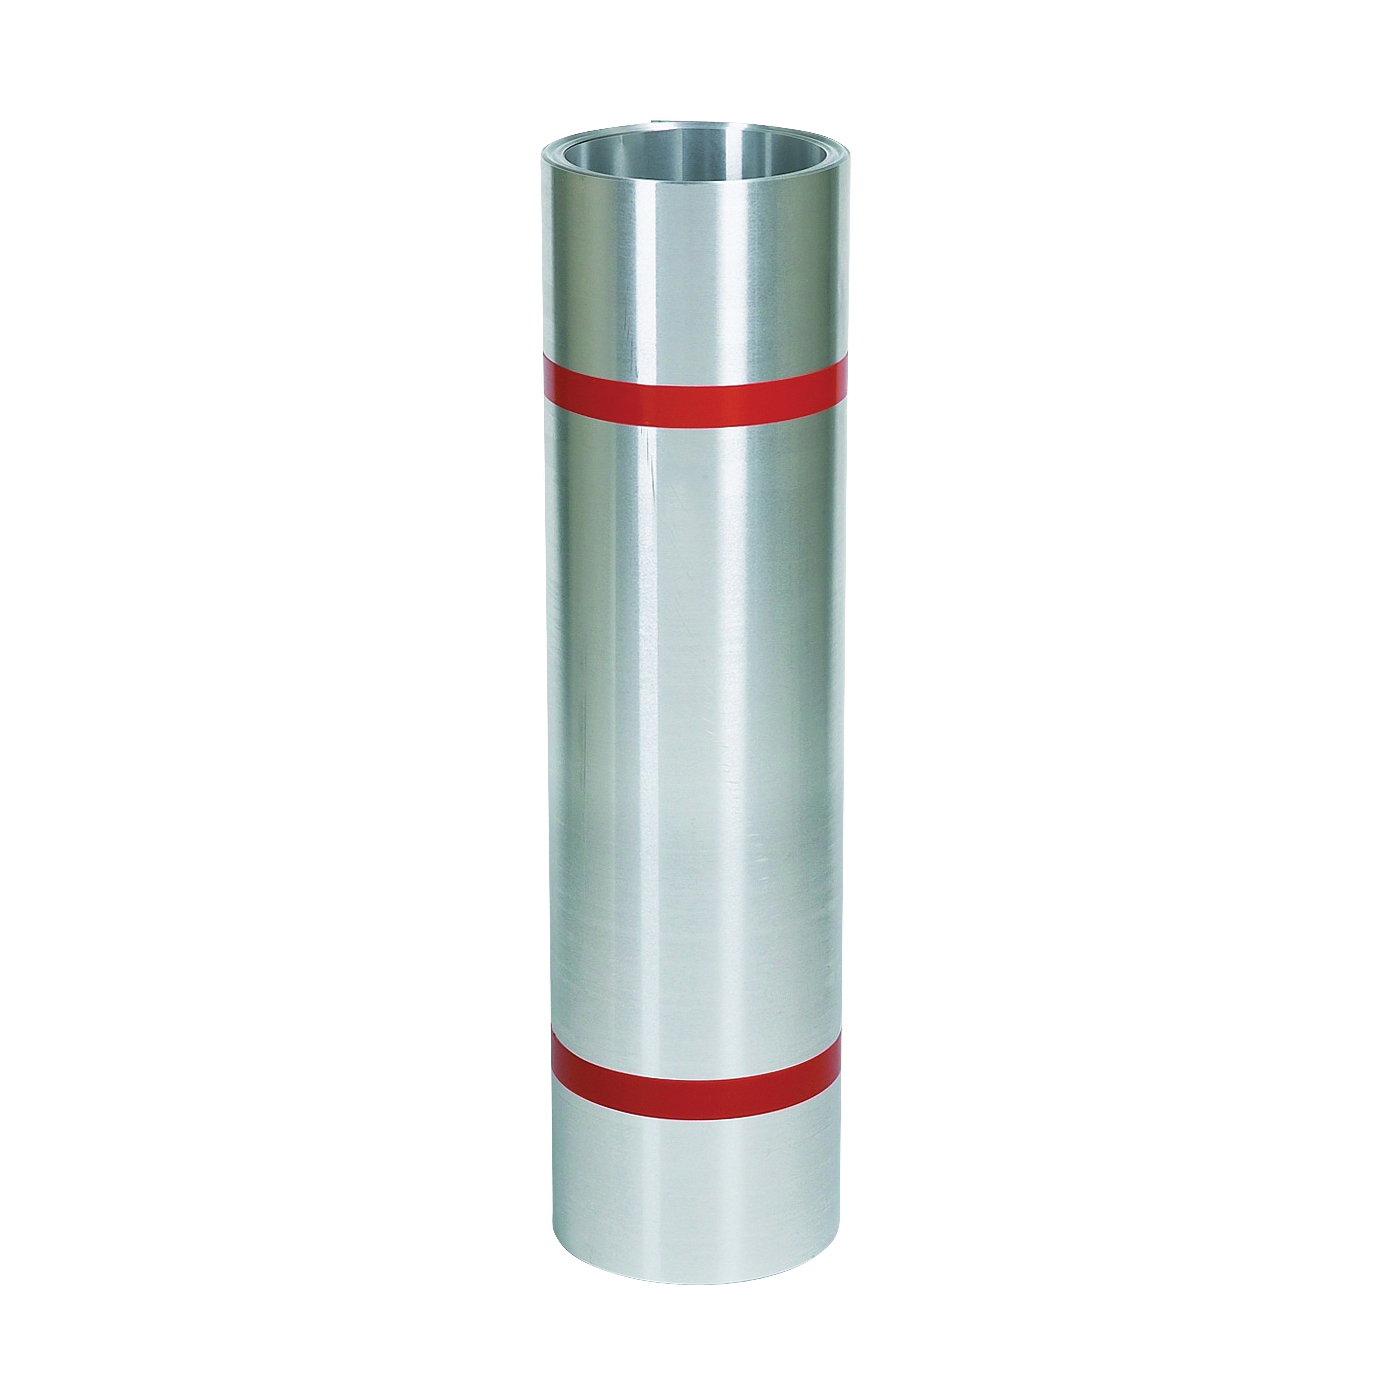 Picture of Amerimax 70020 Roll Valley Flashing, 50 ft OAL, 20 in OAW, Galvanized Steel